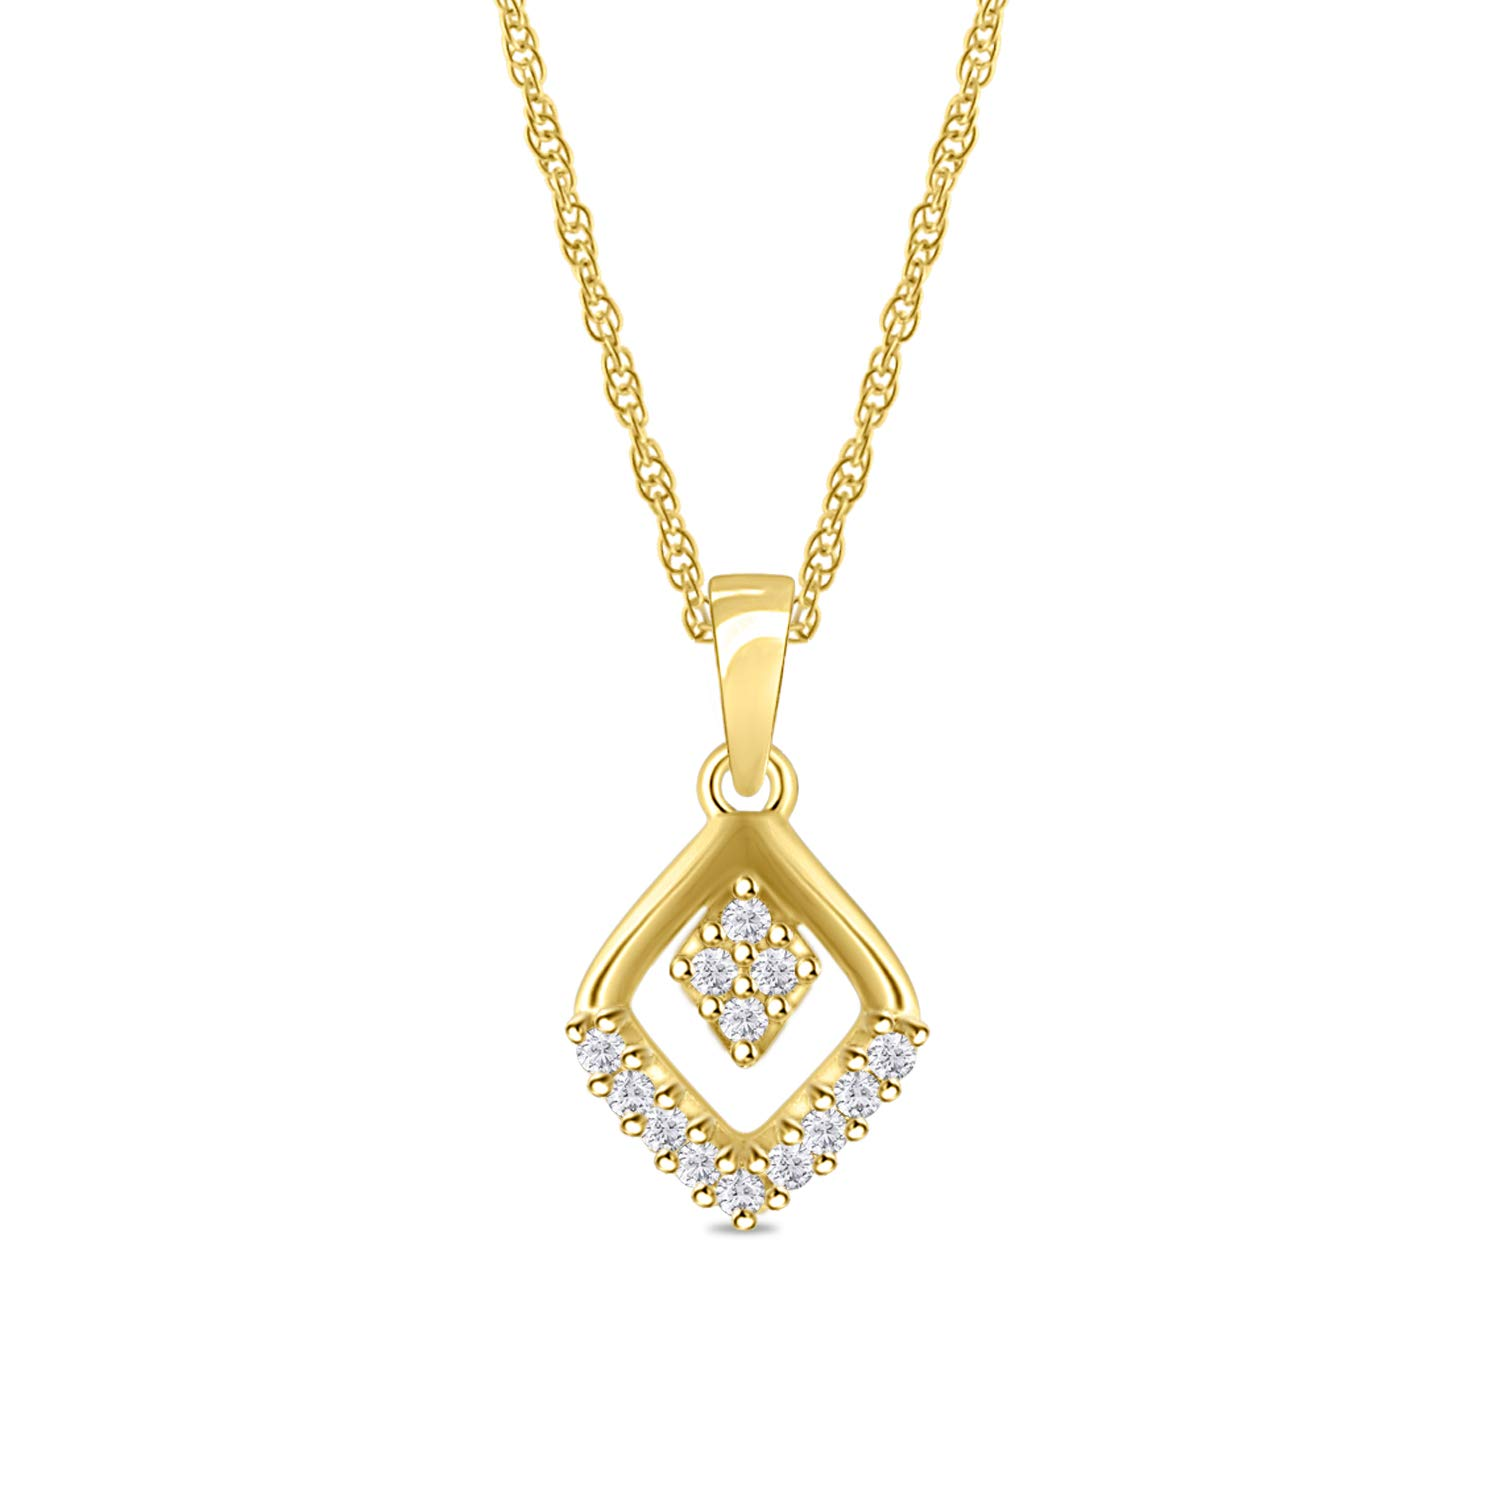 Diamond Scotch Jewelry Round Cubic Zirconia Open Square Cluster Pendant Necklace for Women Girl 14k Gold Plated